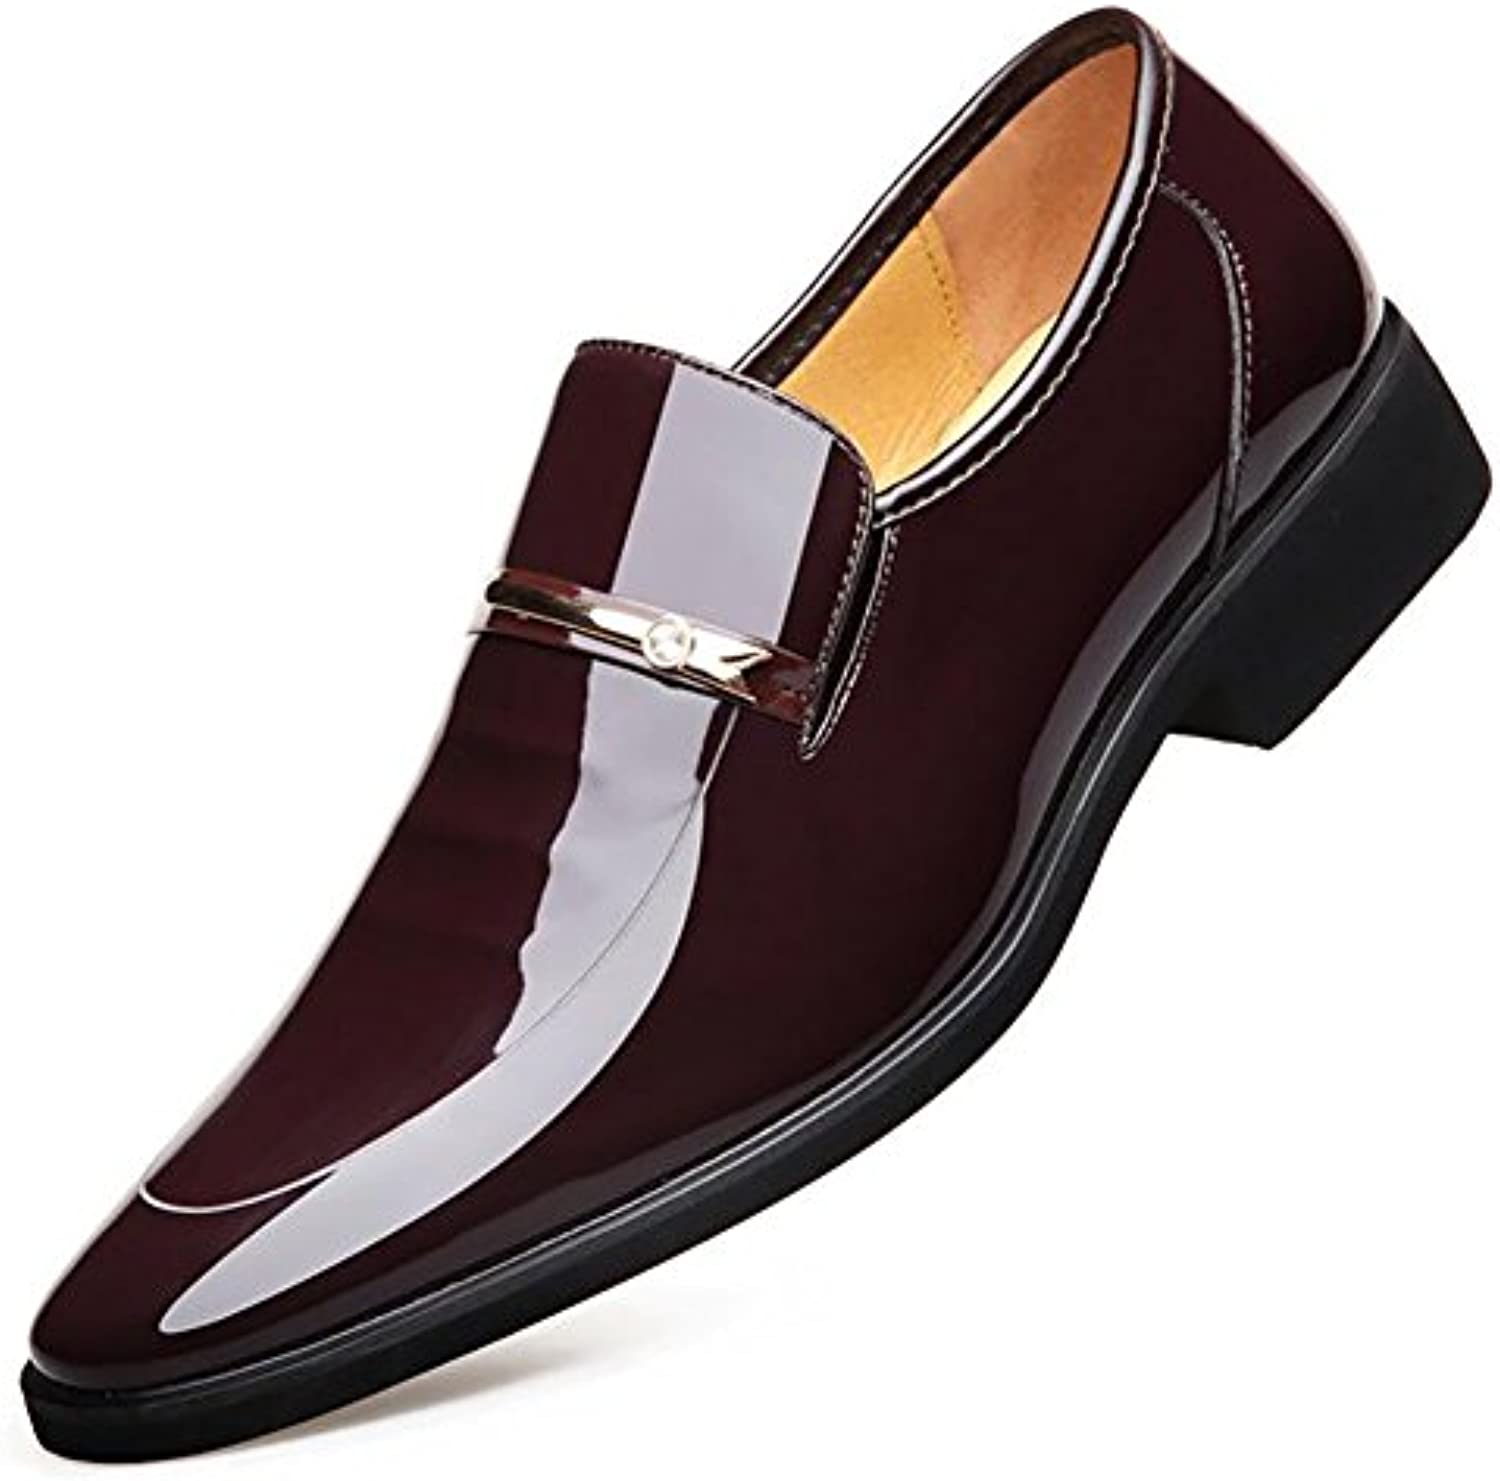 Mr/Ms Abed Mens Leather Shoes, Shoes, Shoes, Men Business Casual Leather Shoes,Loafers & Slip-Ons Formal Men Shoes, Black And Brown... Moderate price high quality Fashion versatile shoes BN16175 b68e10